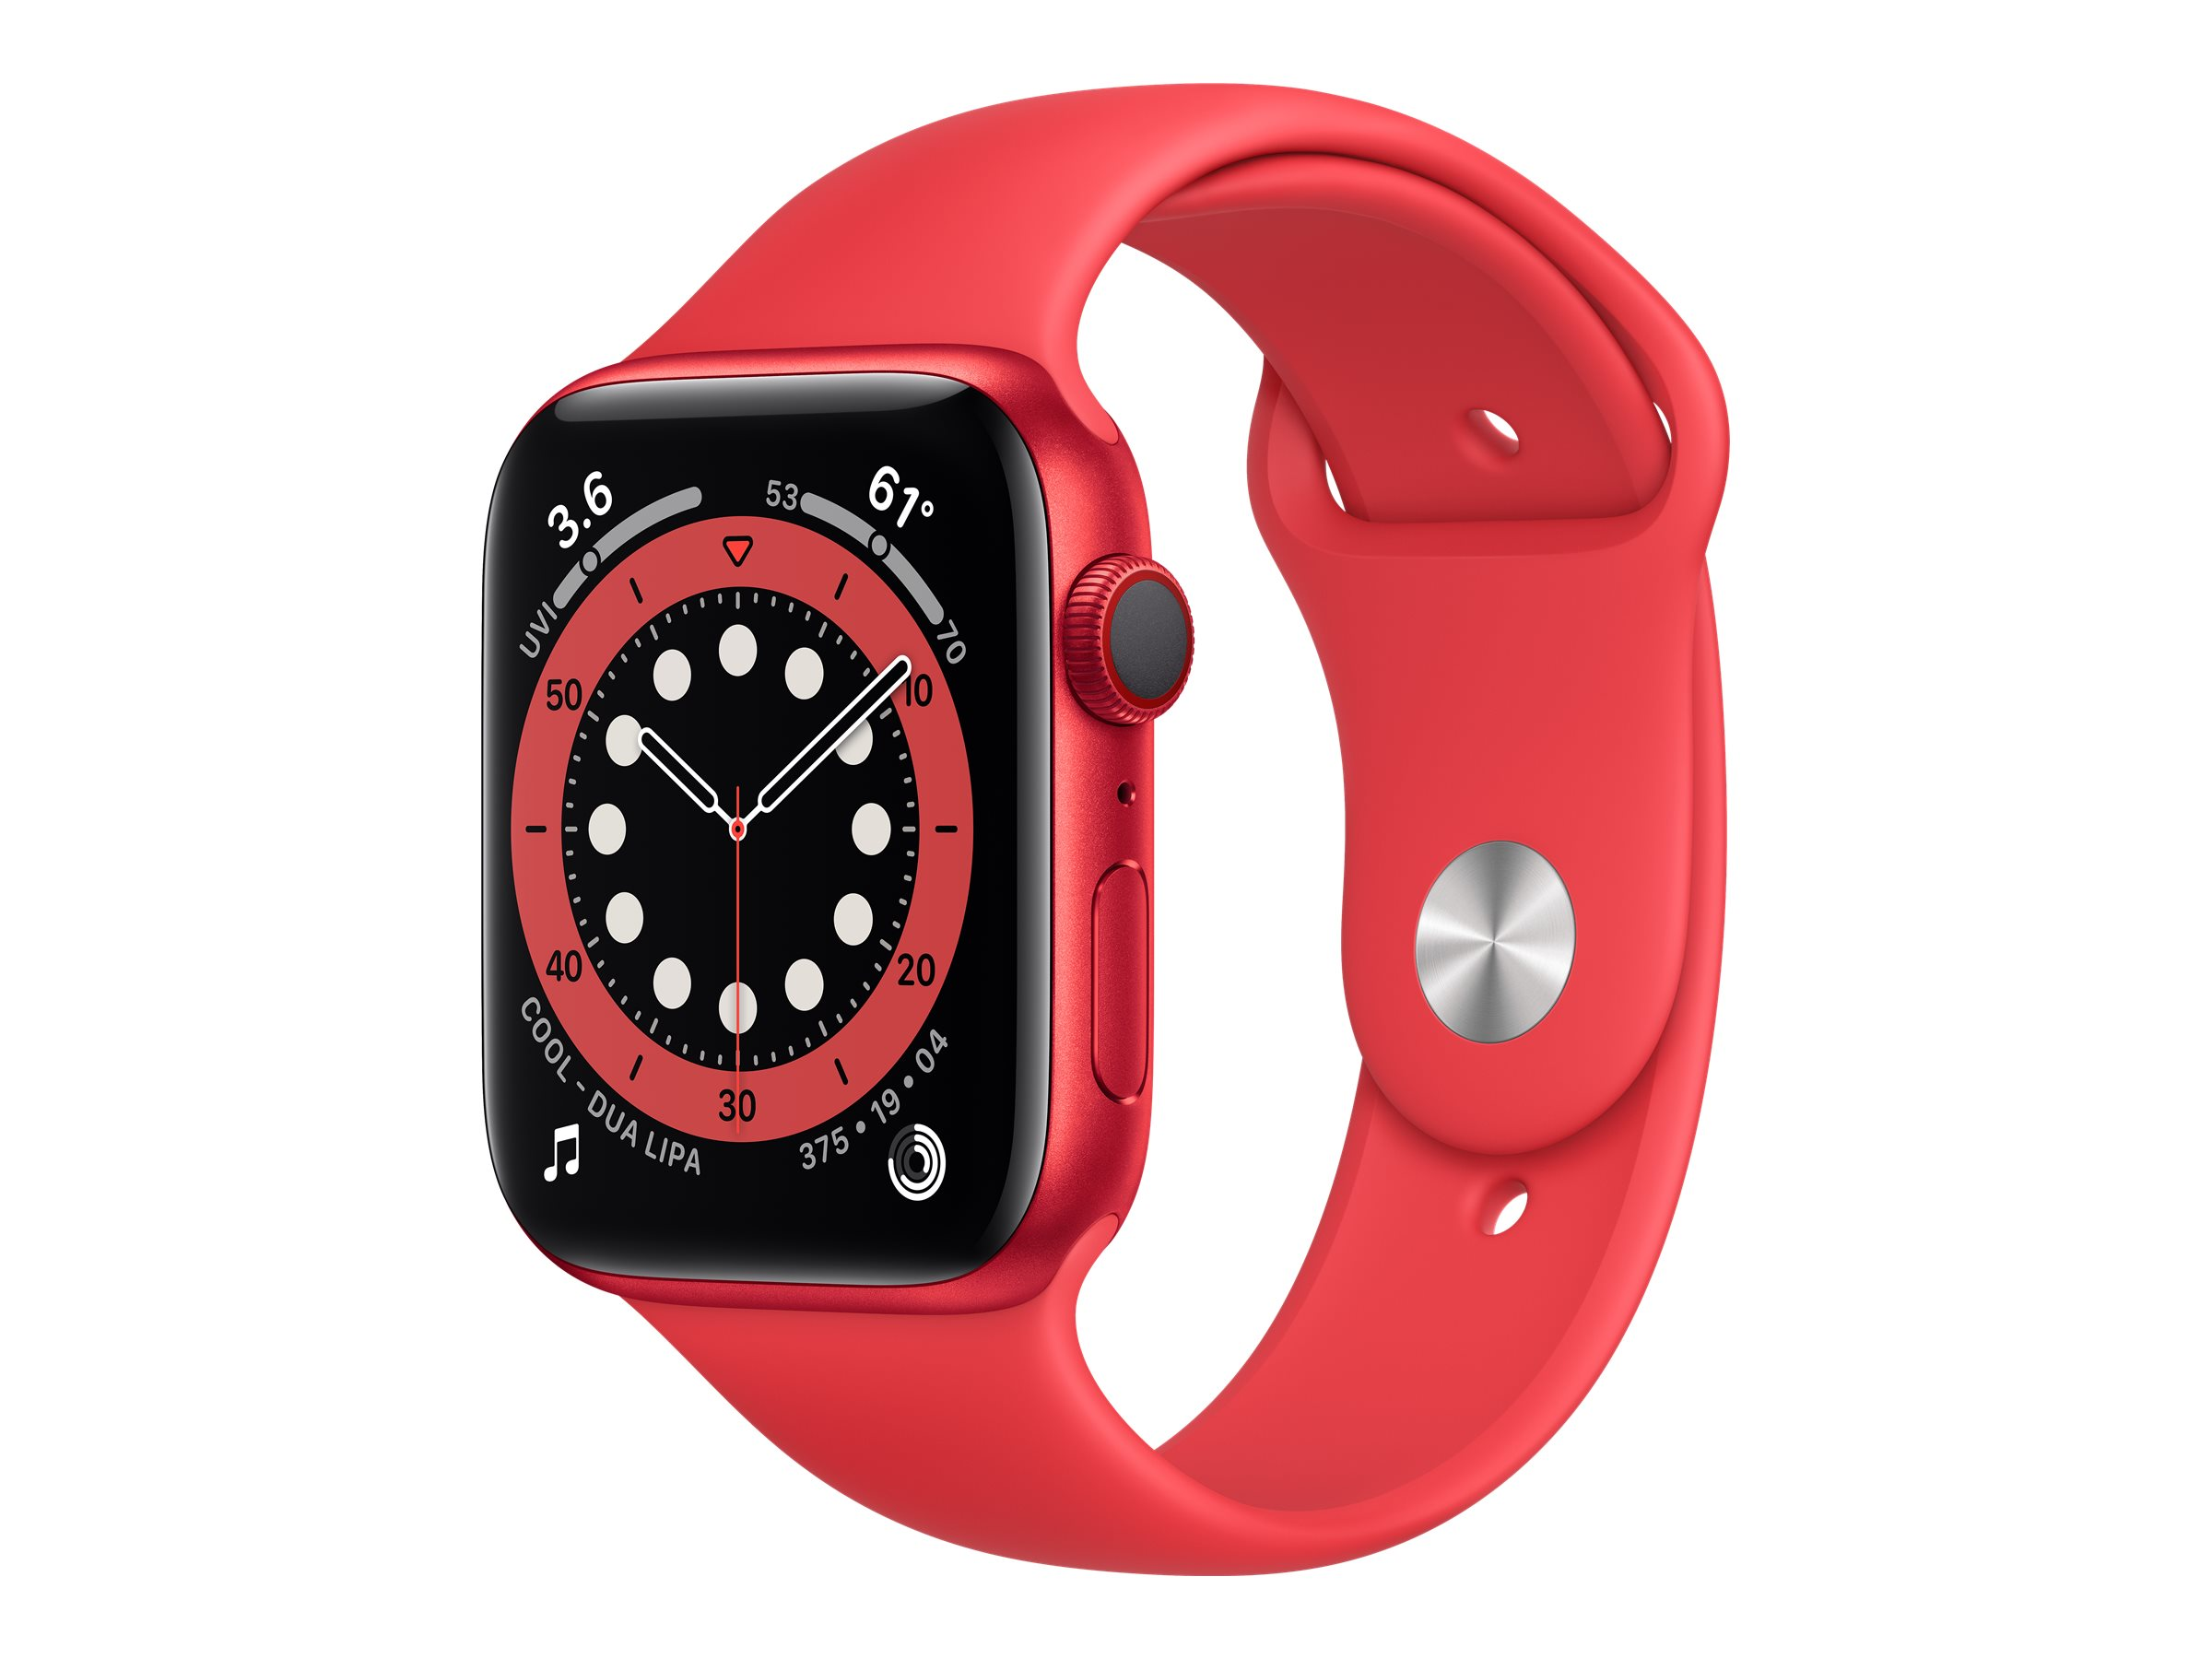 Apple Watch Series 6 (GPS + Cellular) - (PRODUCT)